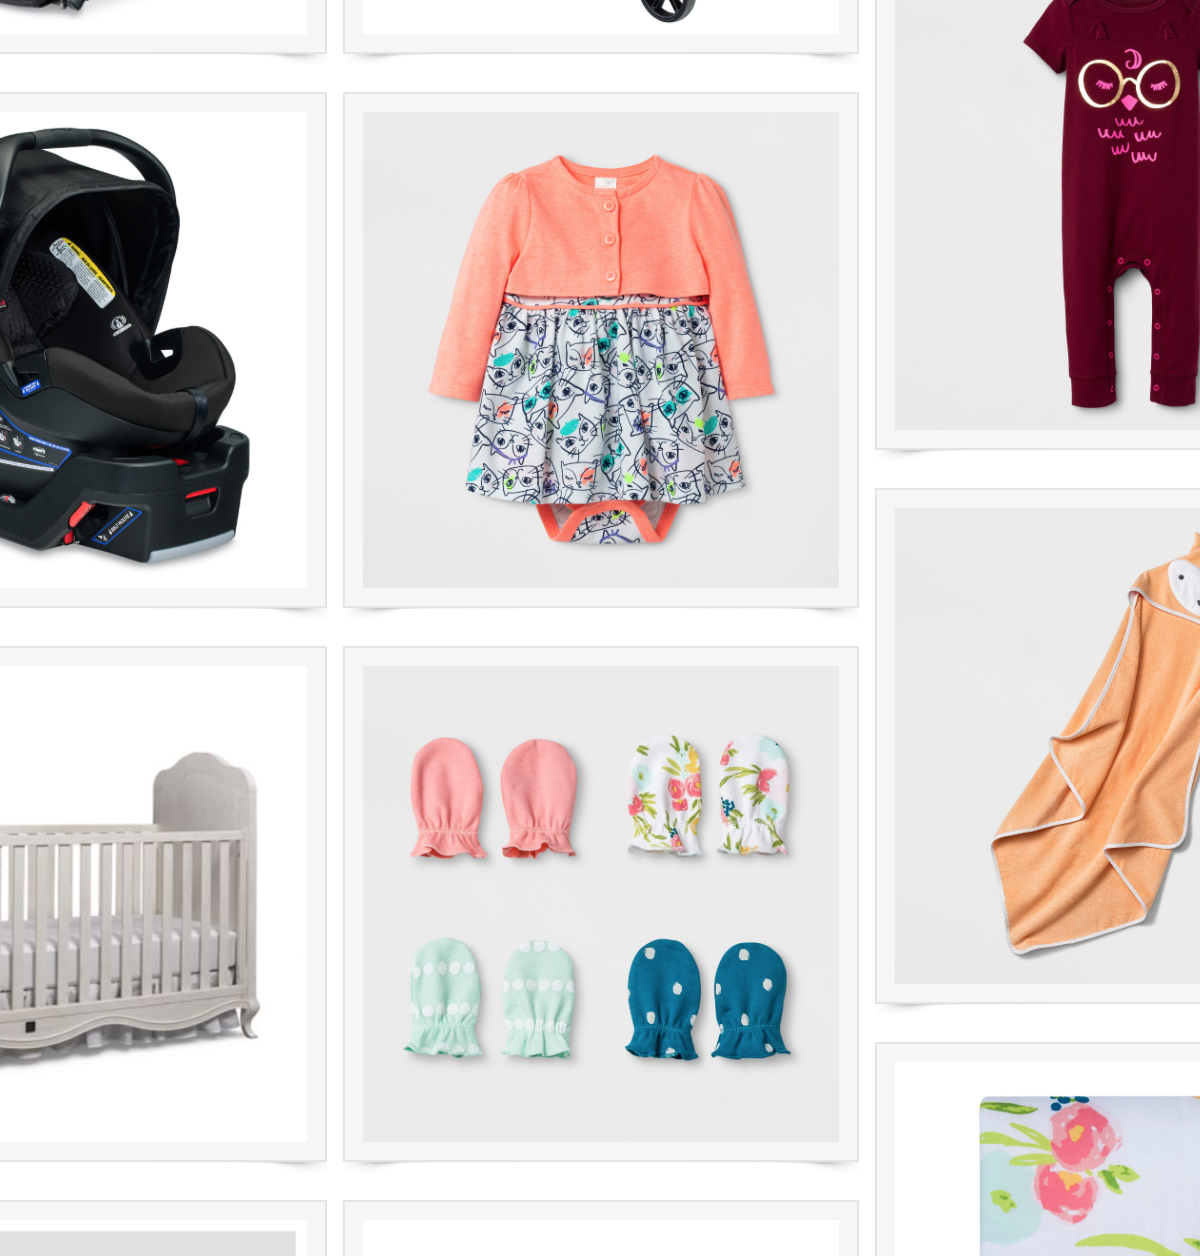 Cute inexpensive baby products by Jessica Linn | Linn Style